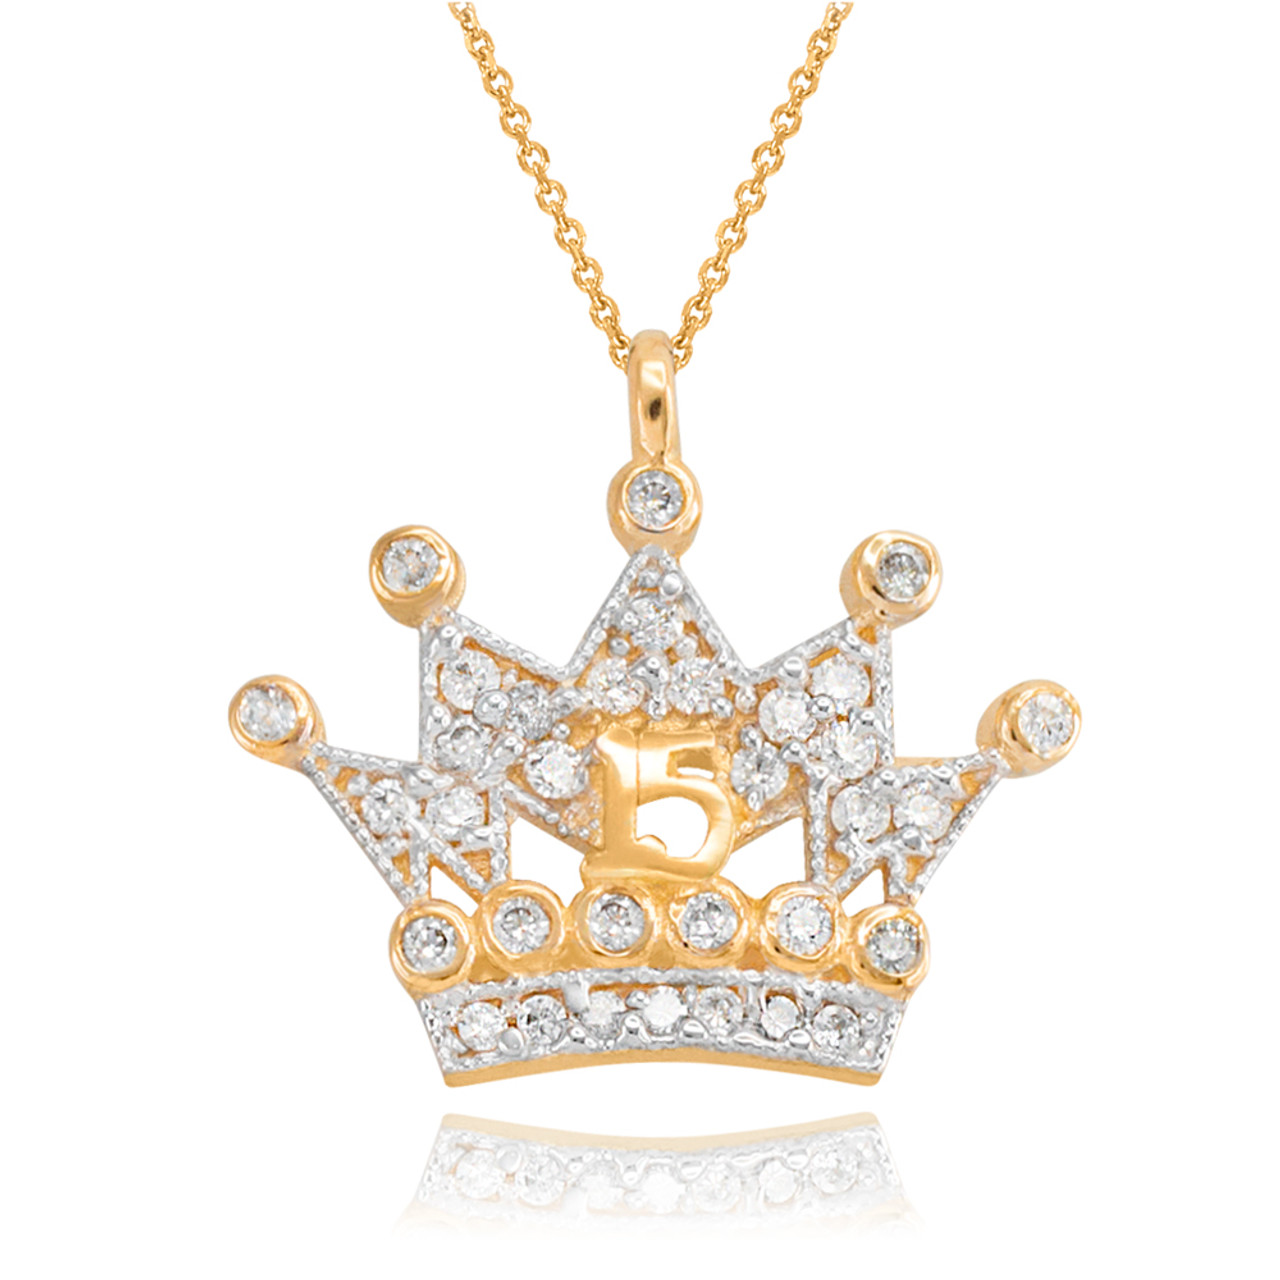 nature quality pendant cz with zirconia lovers elegant jewel crown for necklace crystal high genuine sterling cubic jewelry tale gold gift fairy fashion rose rank silver